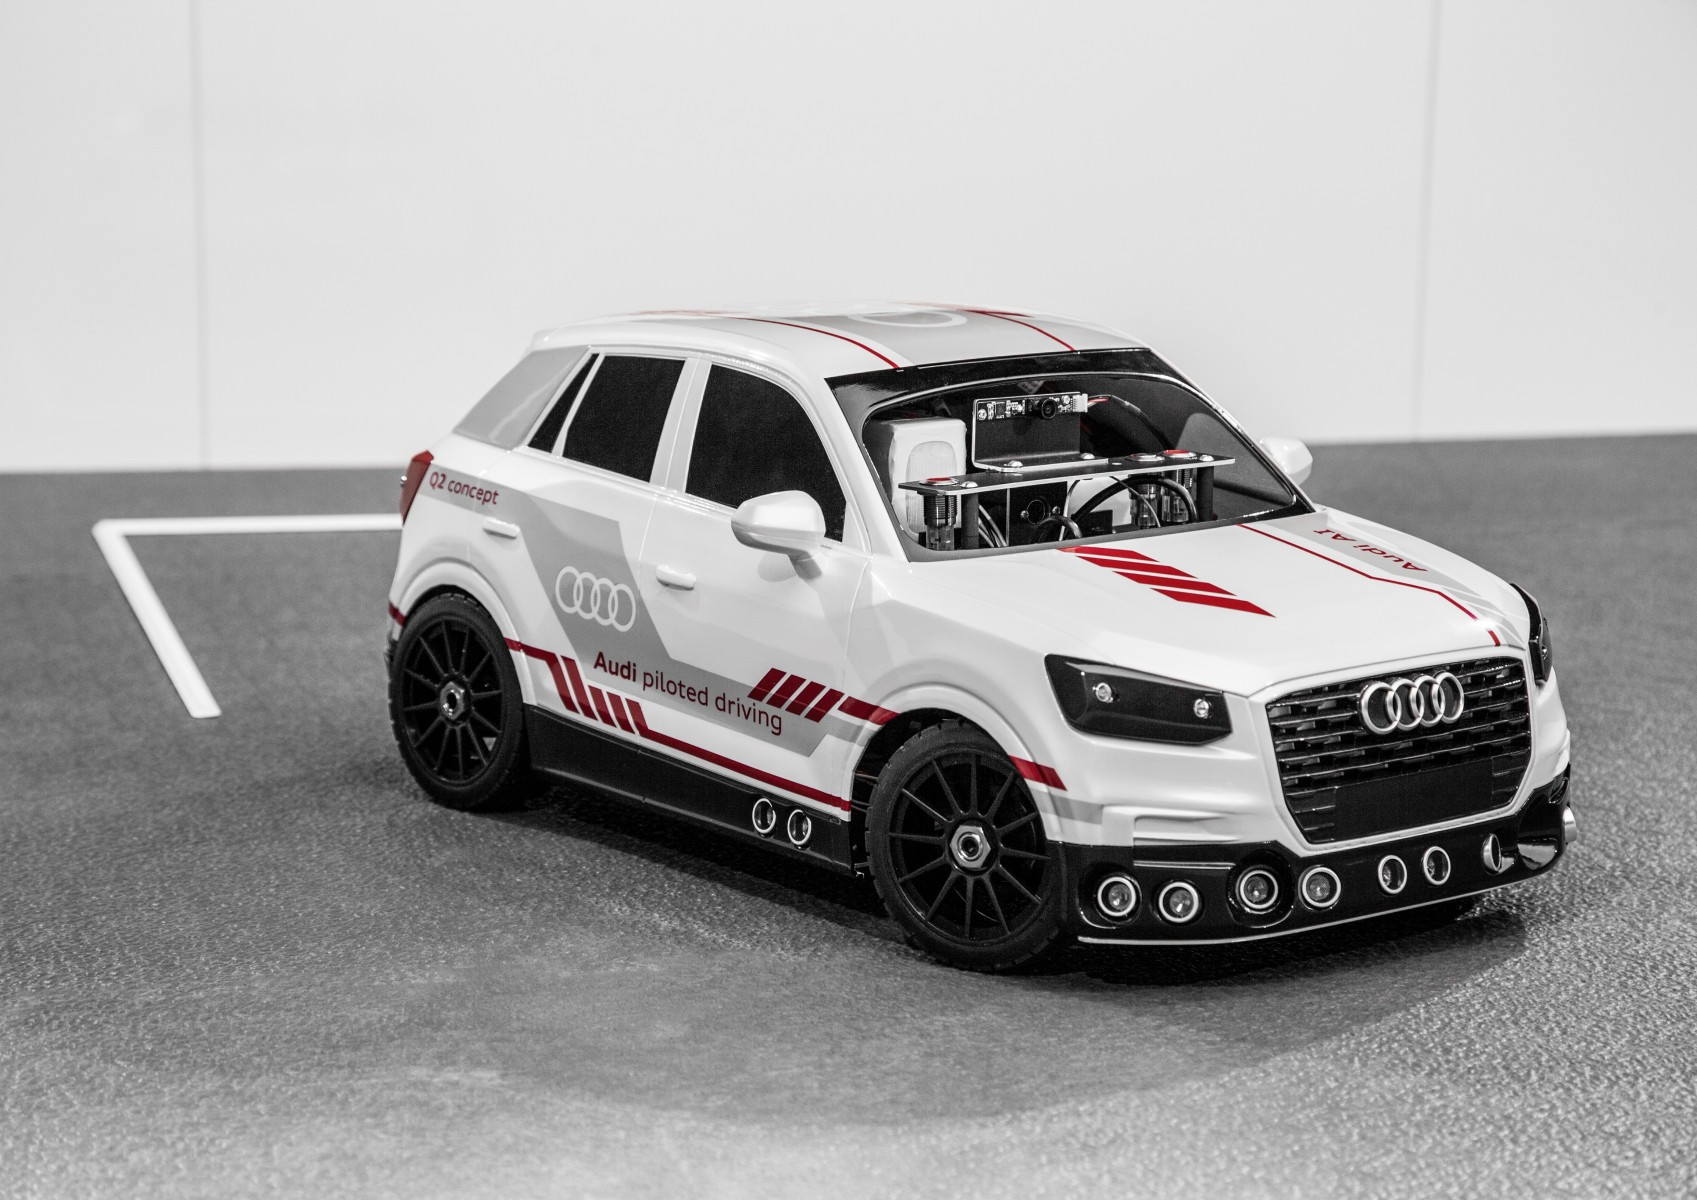 Audi Q2 deep learning concept schaalmodel